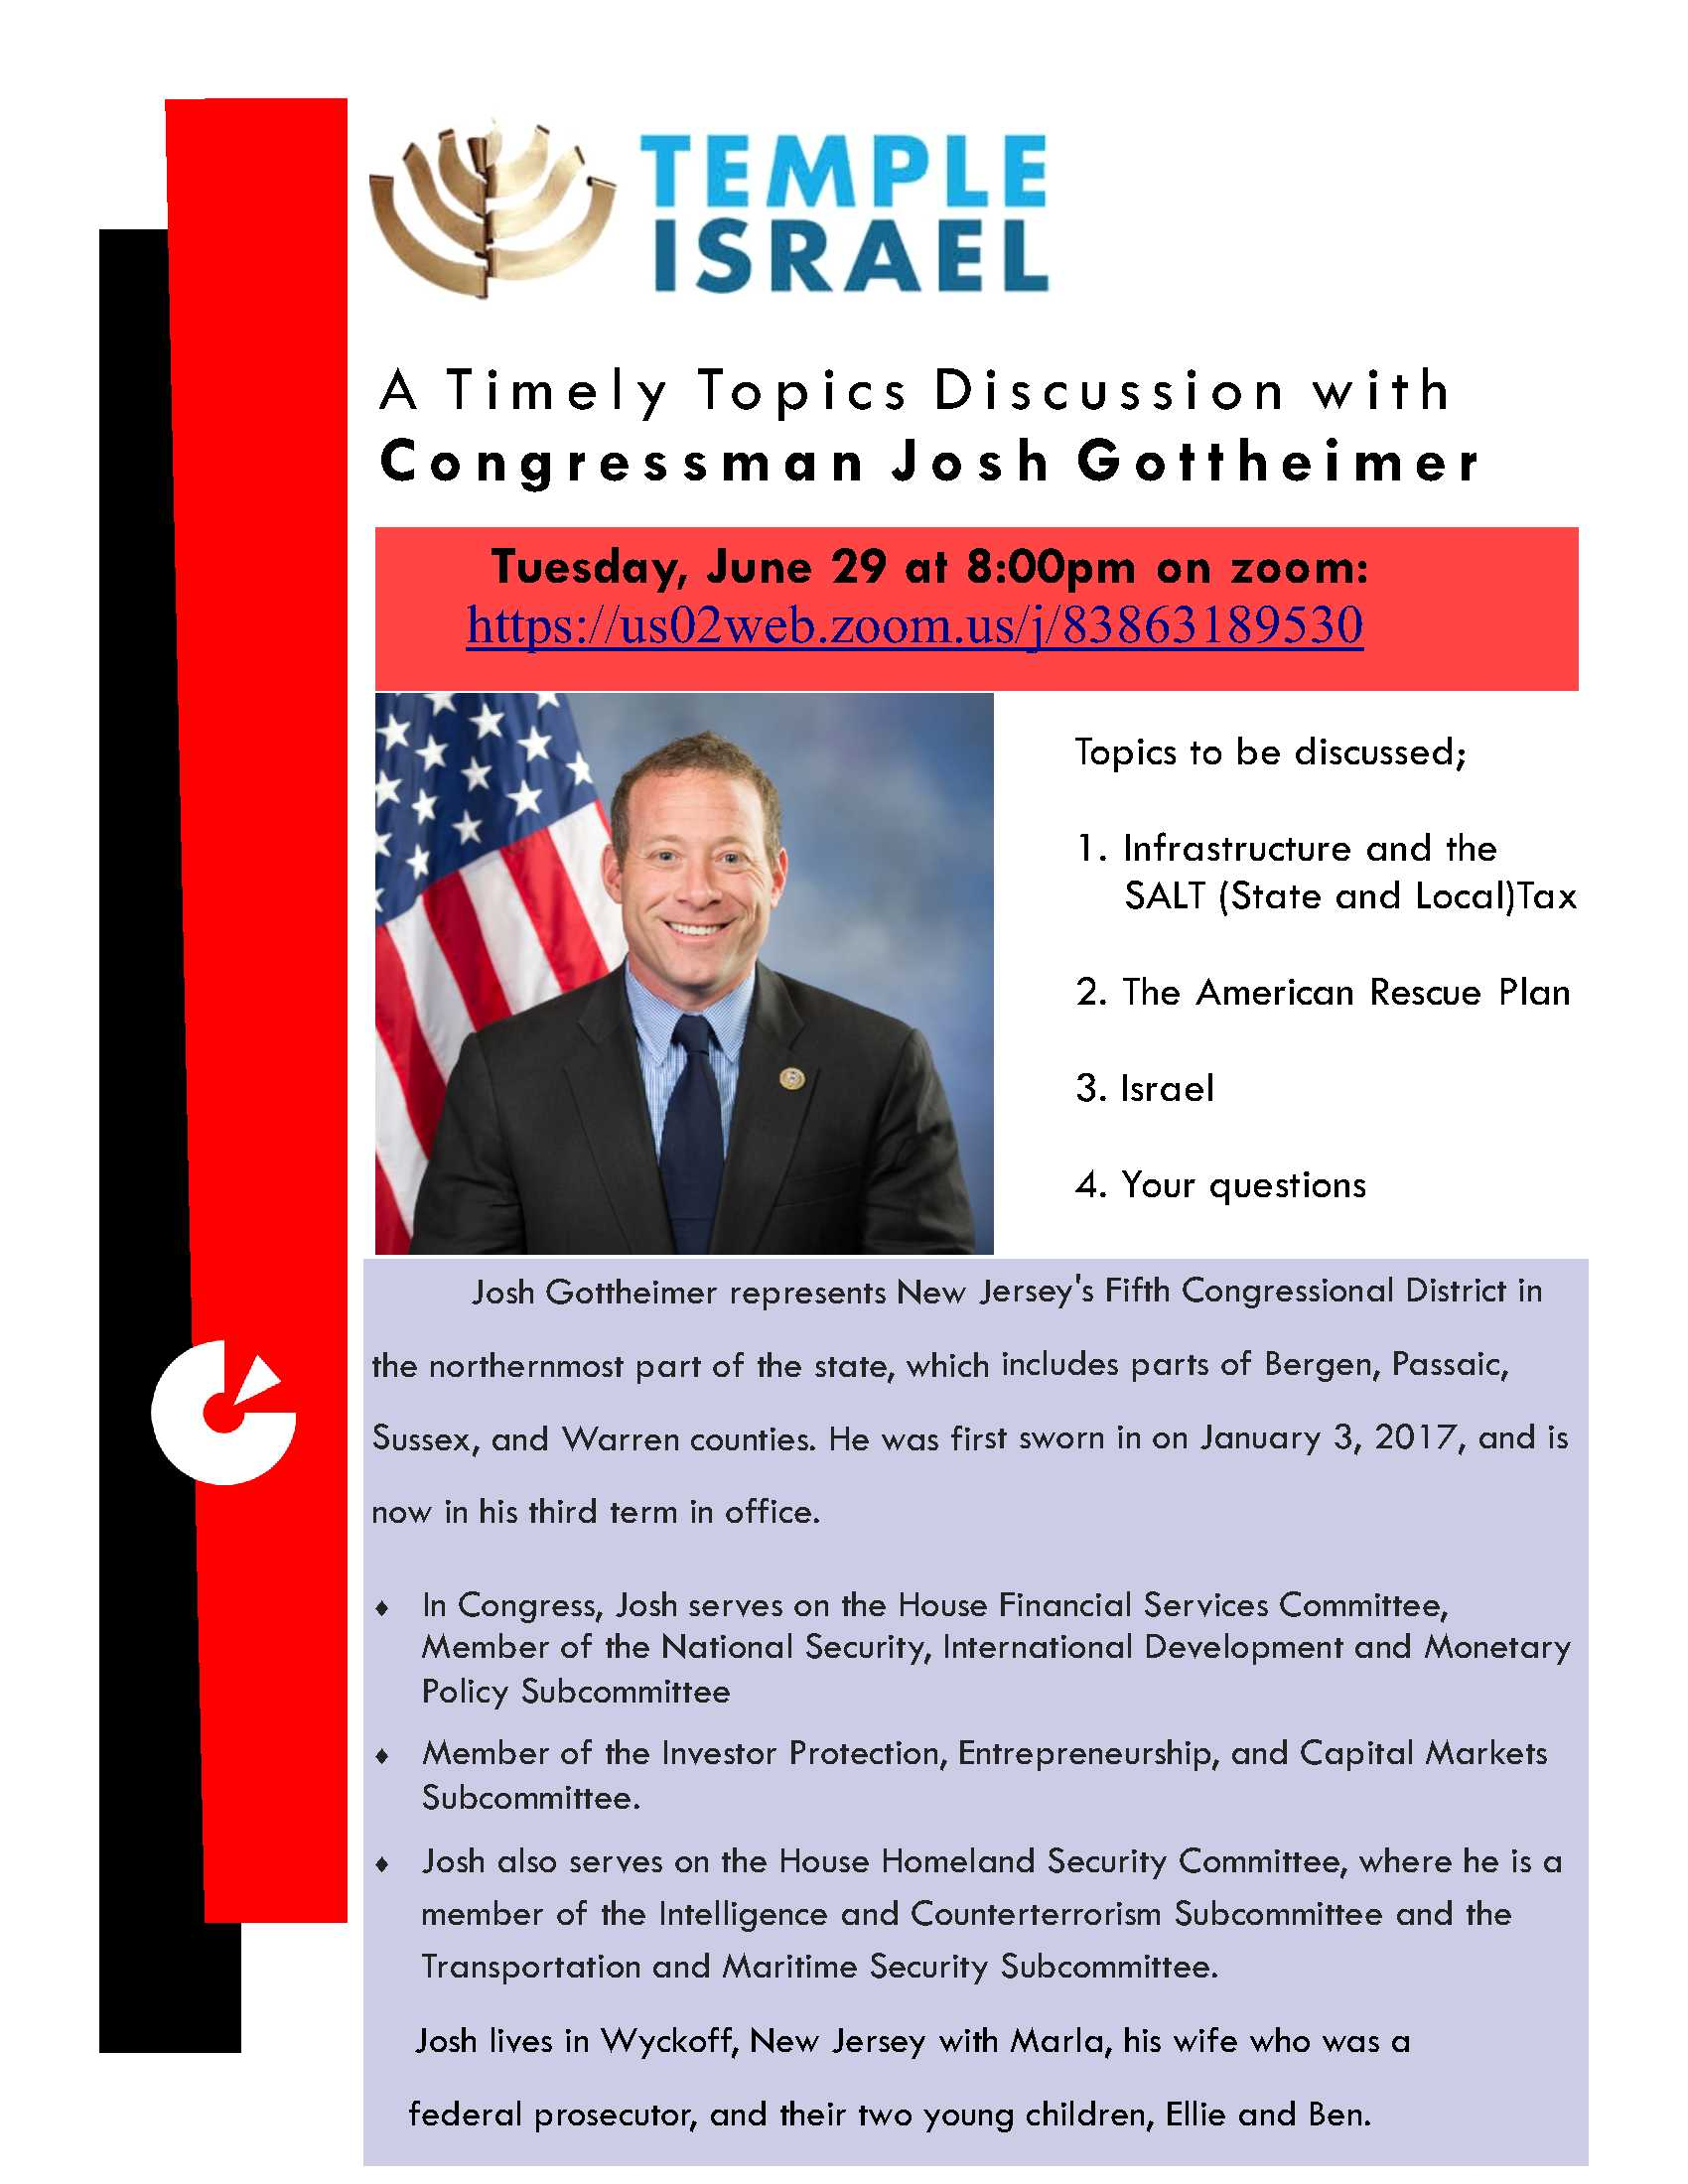 J. Gottheimer? When? Tuesday, June 29. What time? 8